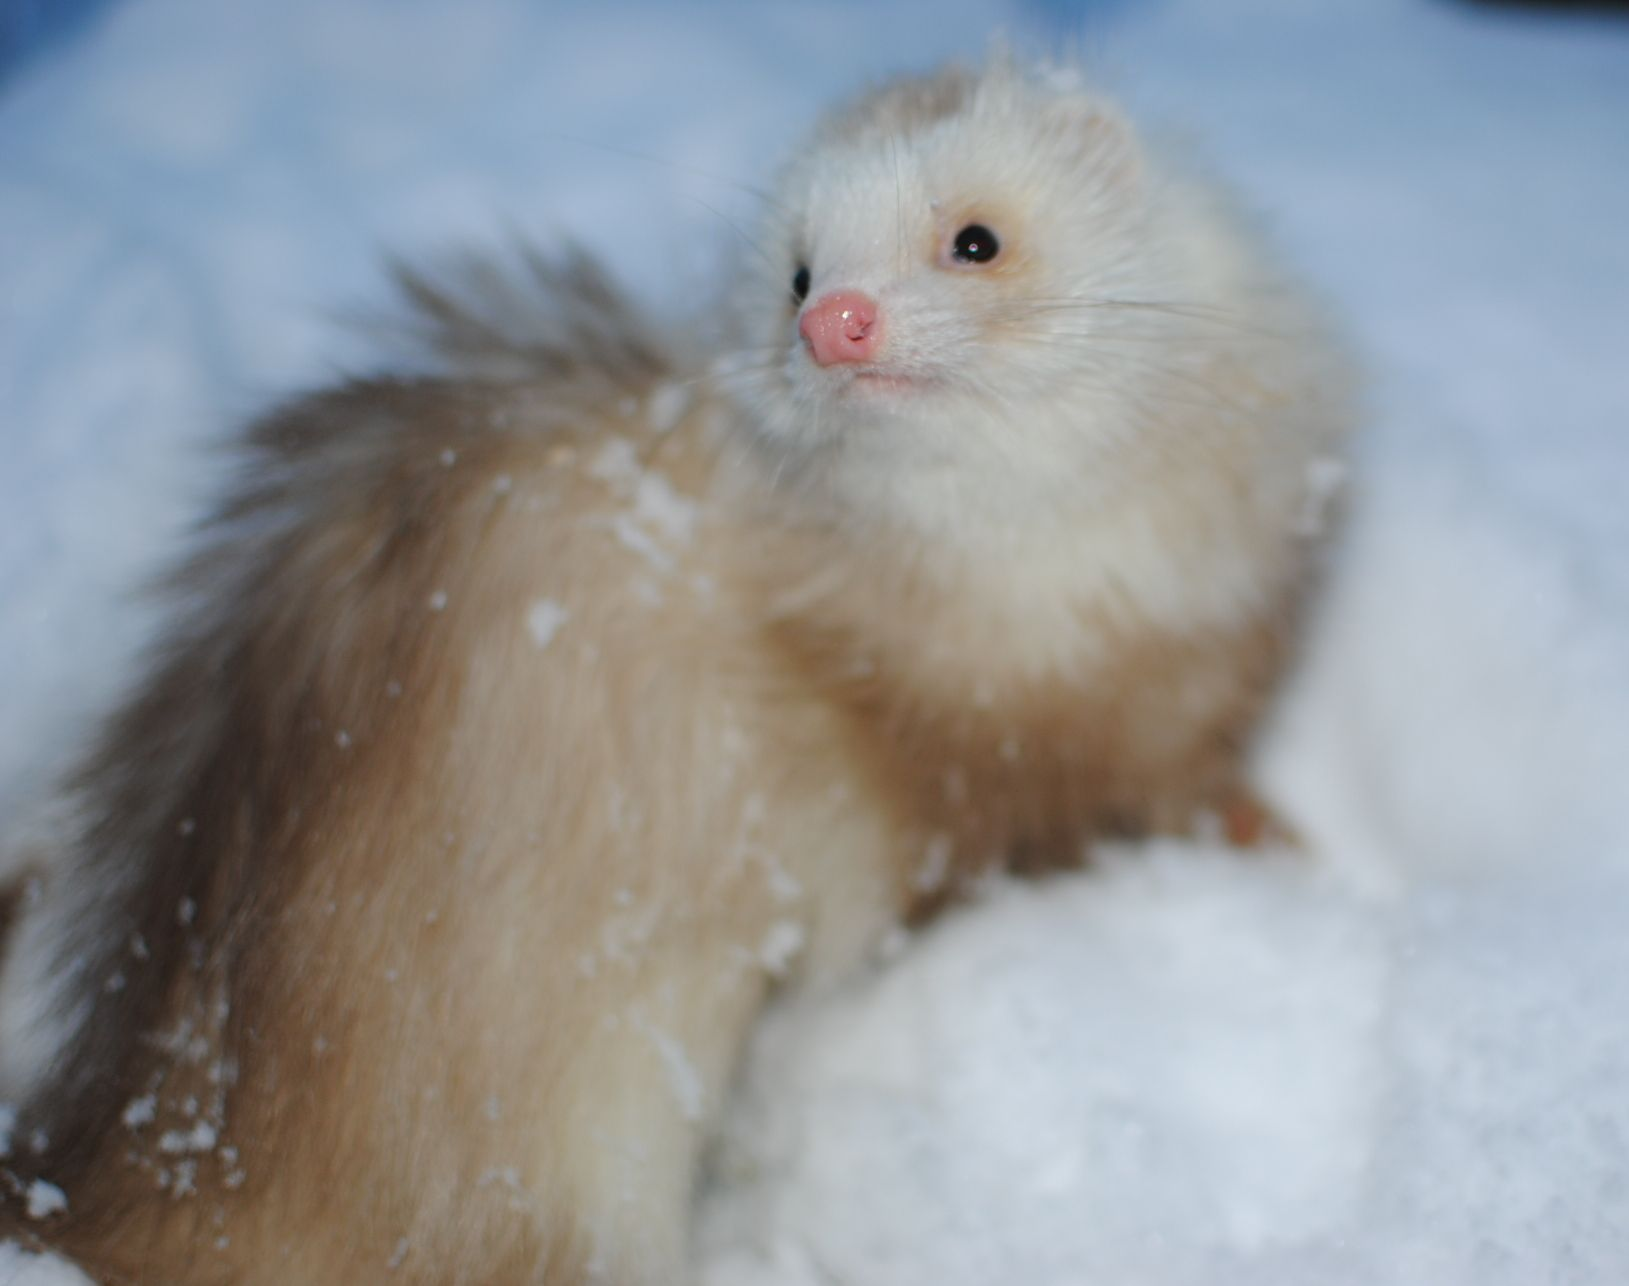 Permalink to 50 Cute Angora Ferrets for Sale